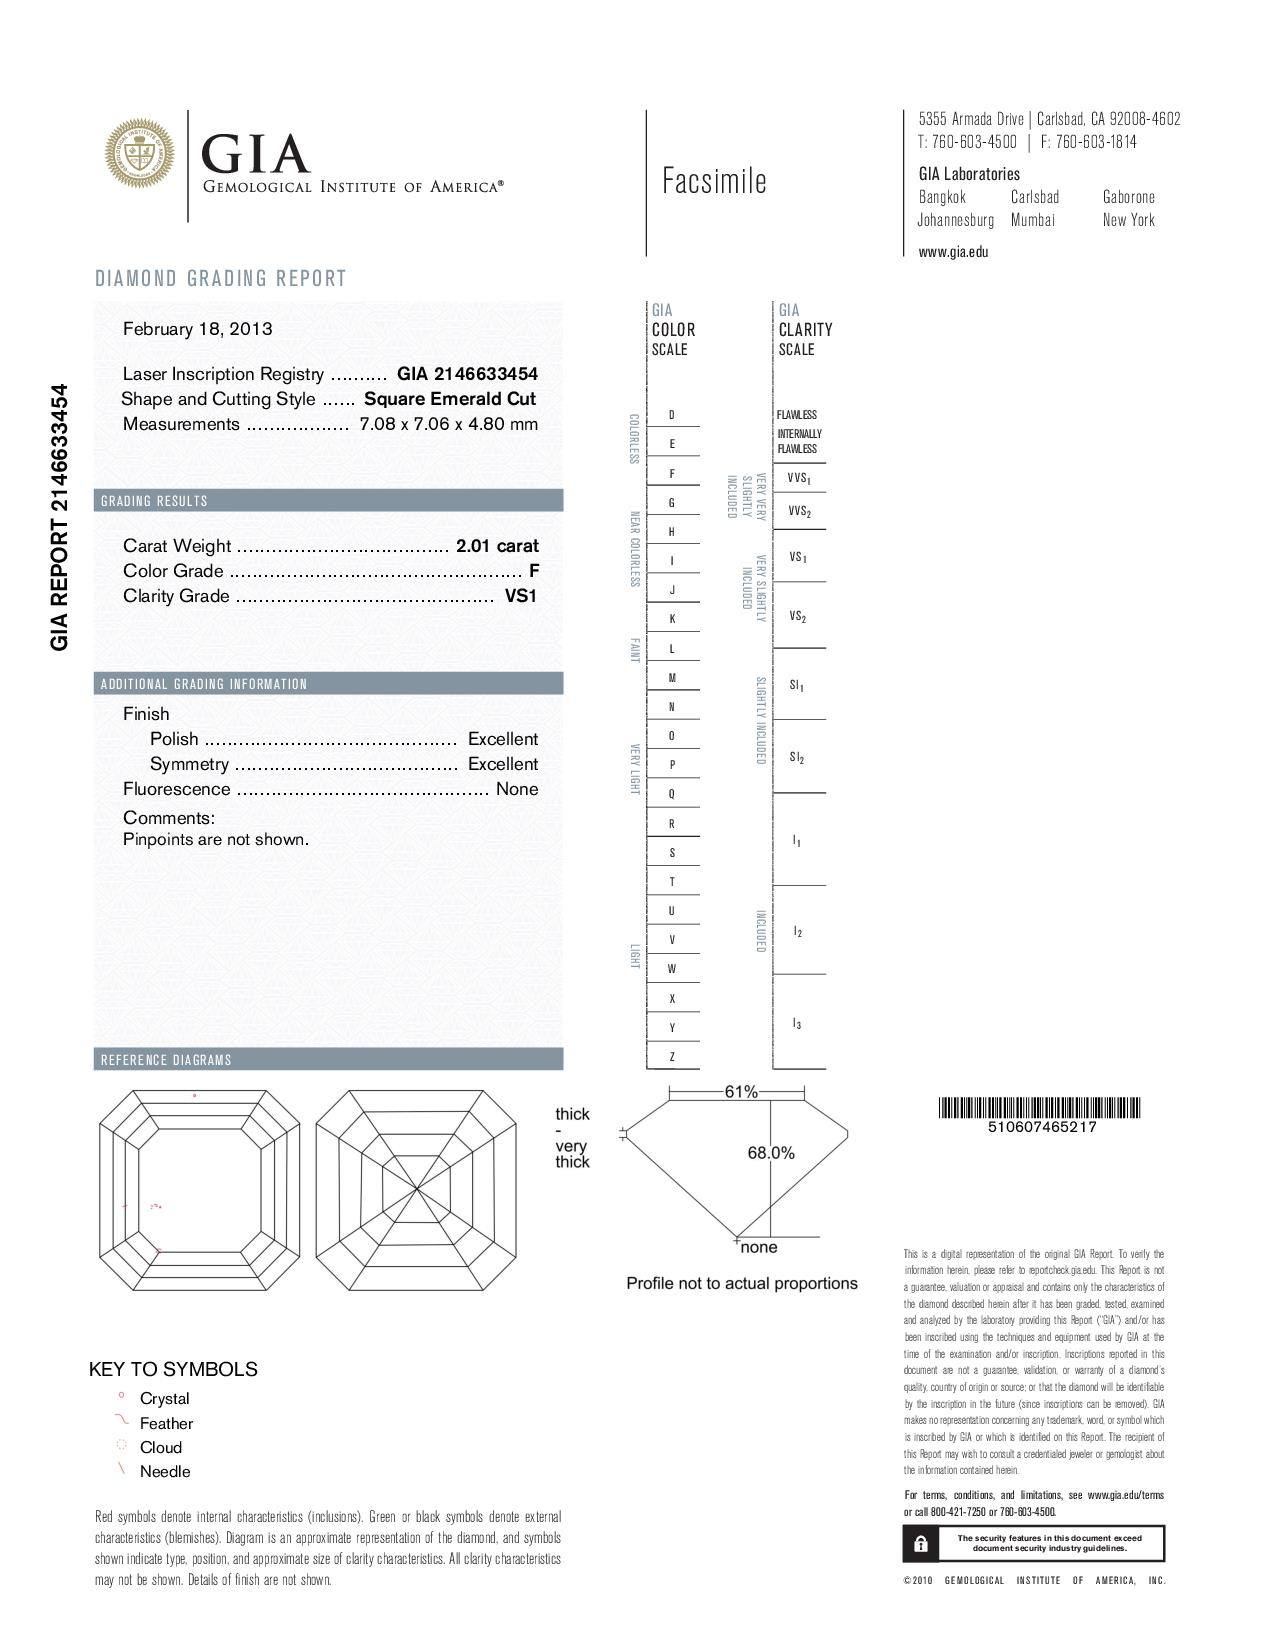 This is a 2.01 carat asscher shape, F color, VS1 clarity natural diamond accompanied by a GIA grading report.